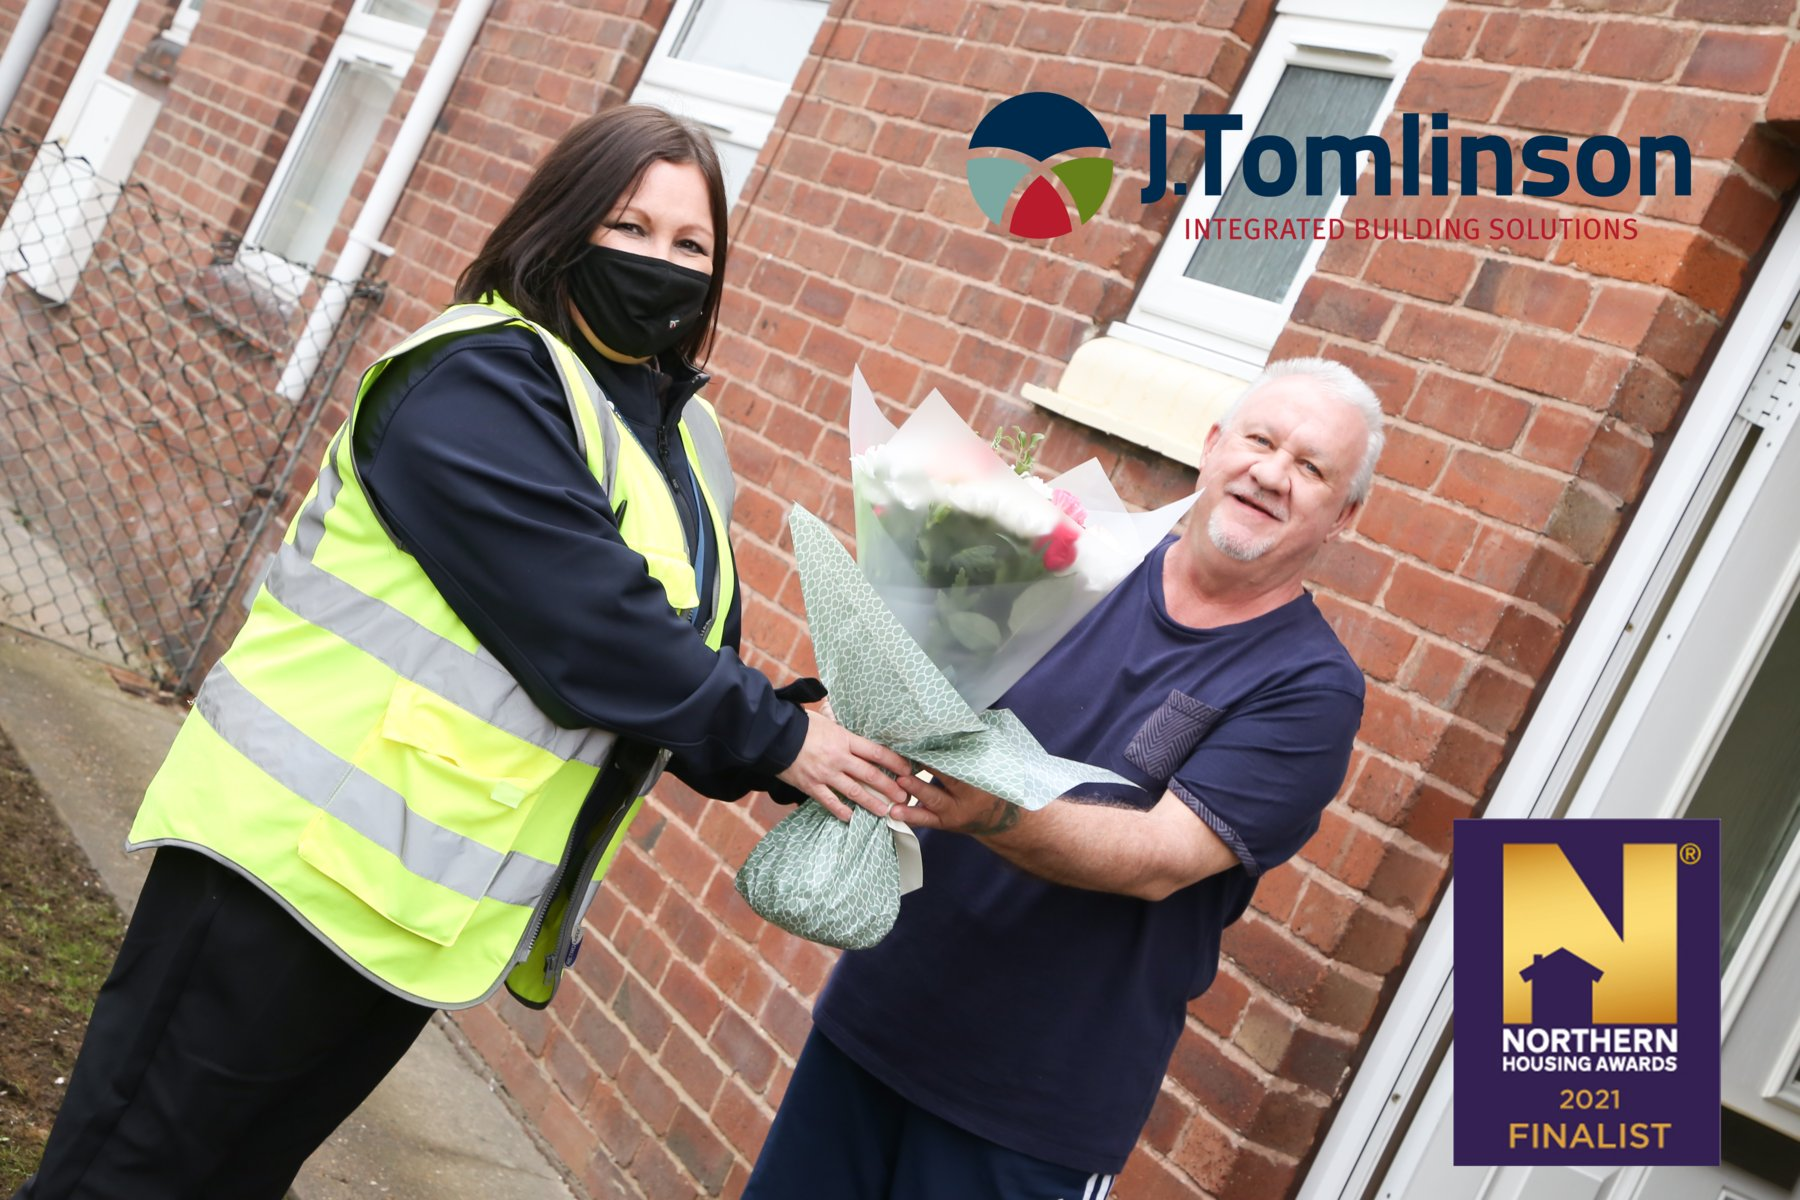 J Tomlinson in the running for Contractor of the Year title at 2021 Northern Housing Awards